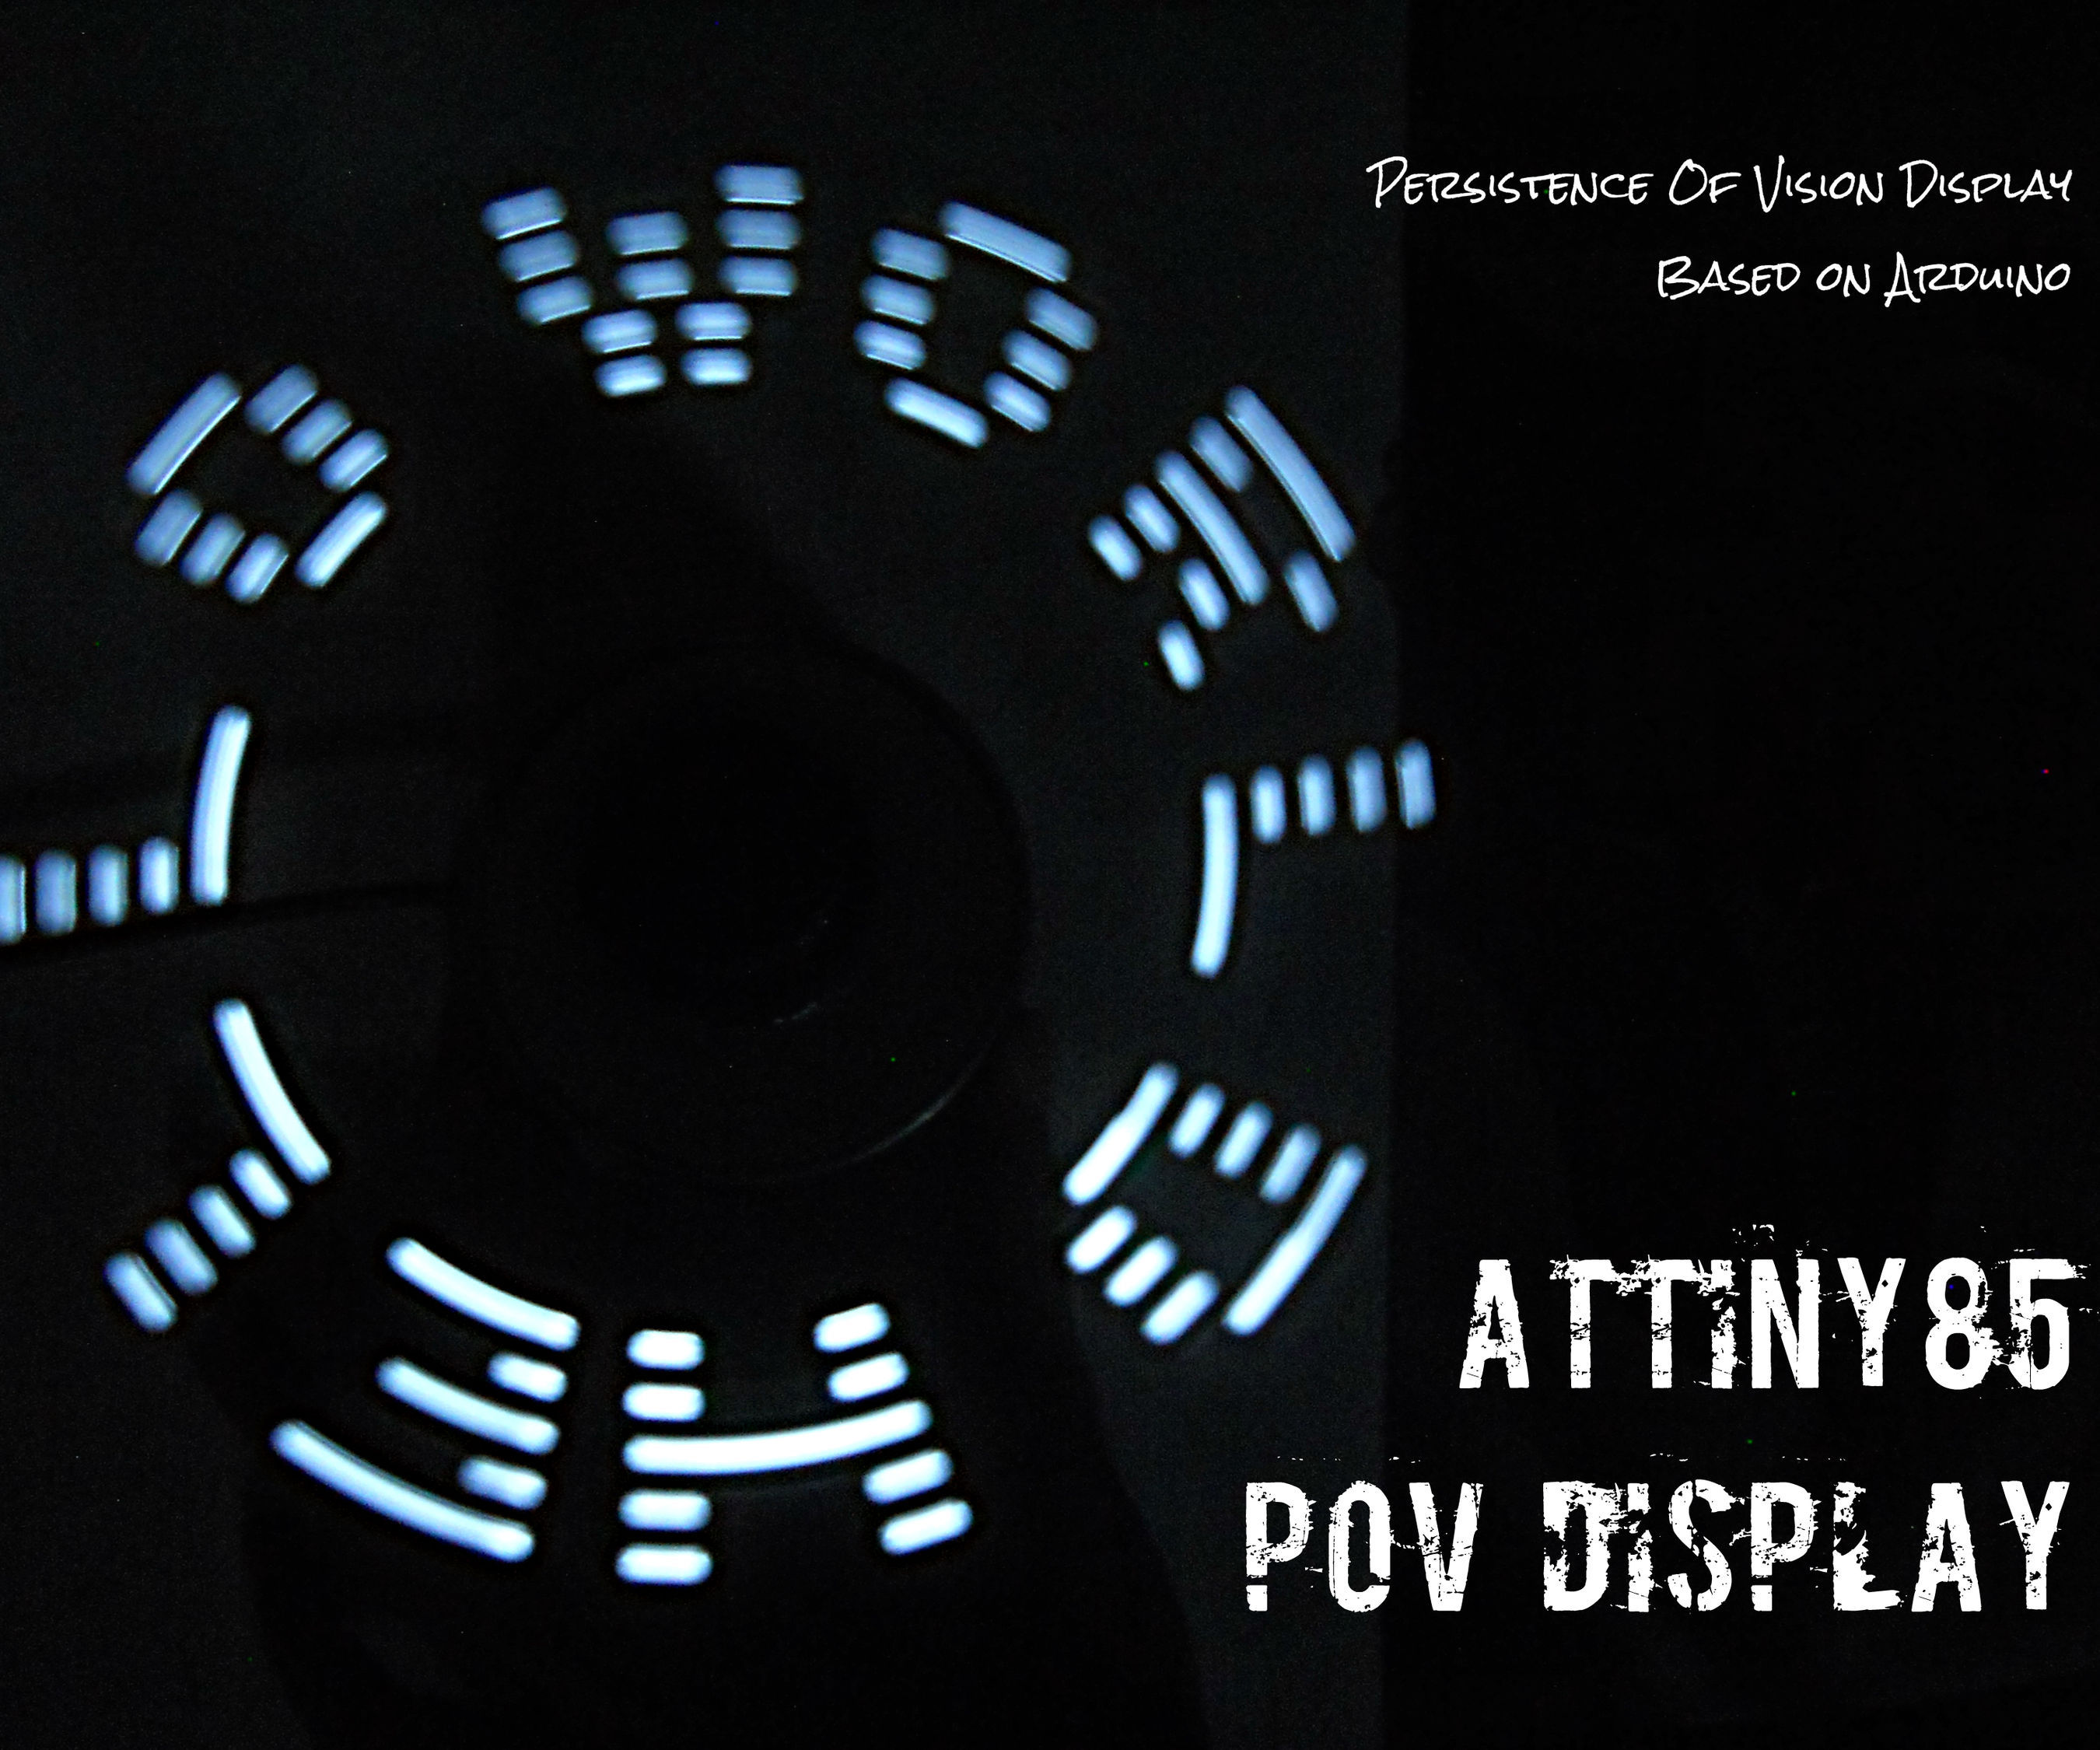 ATtiny85 POV Display